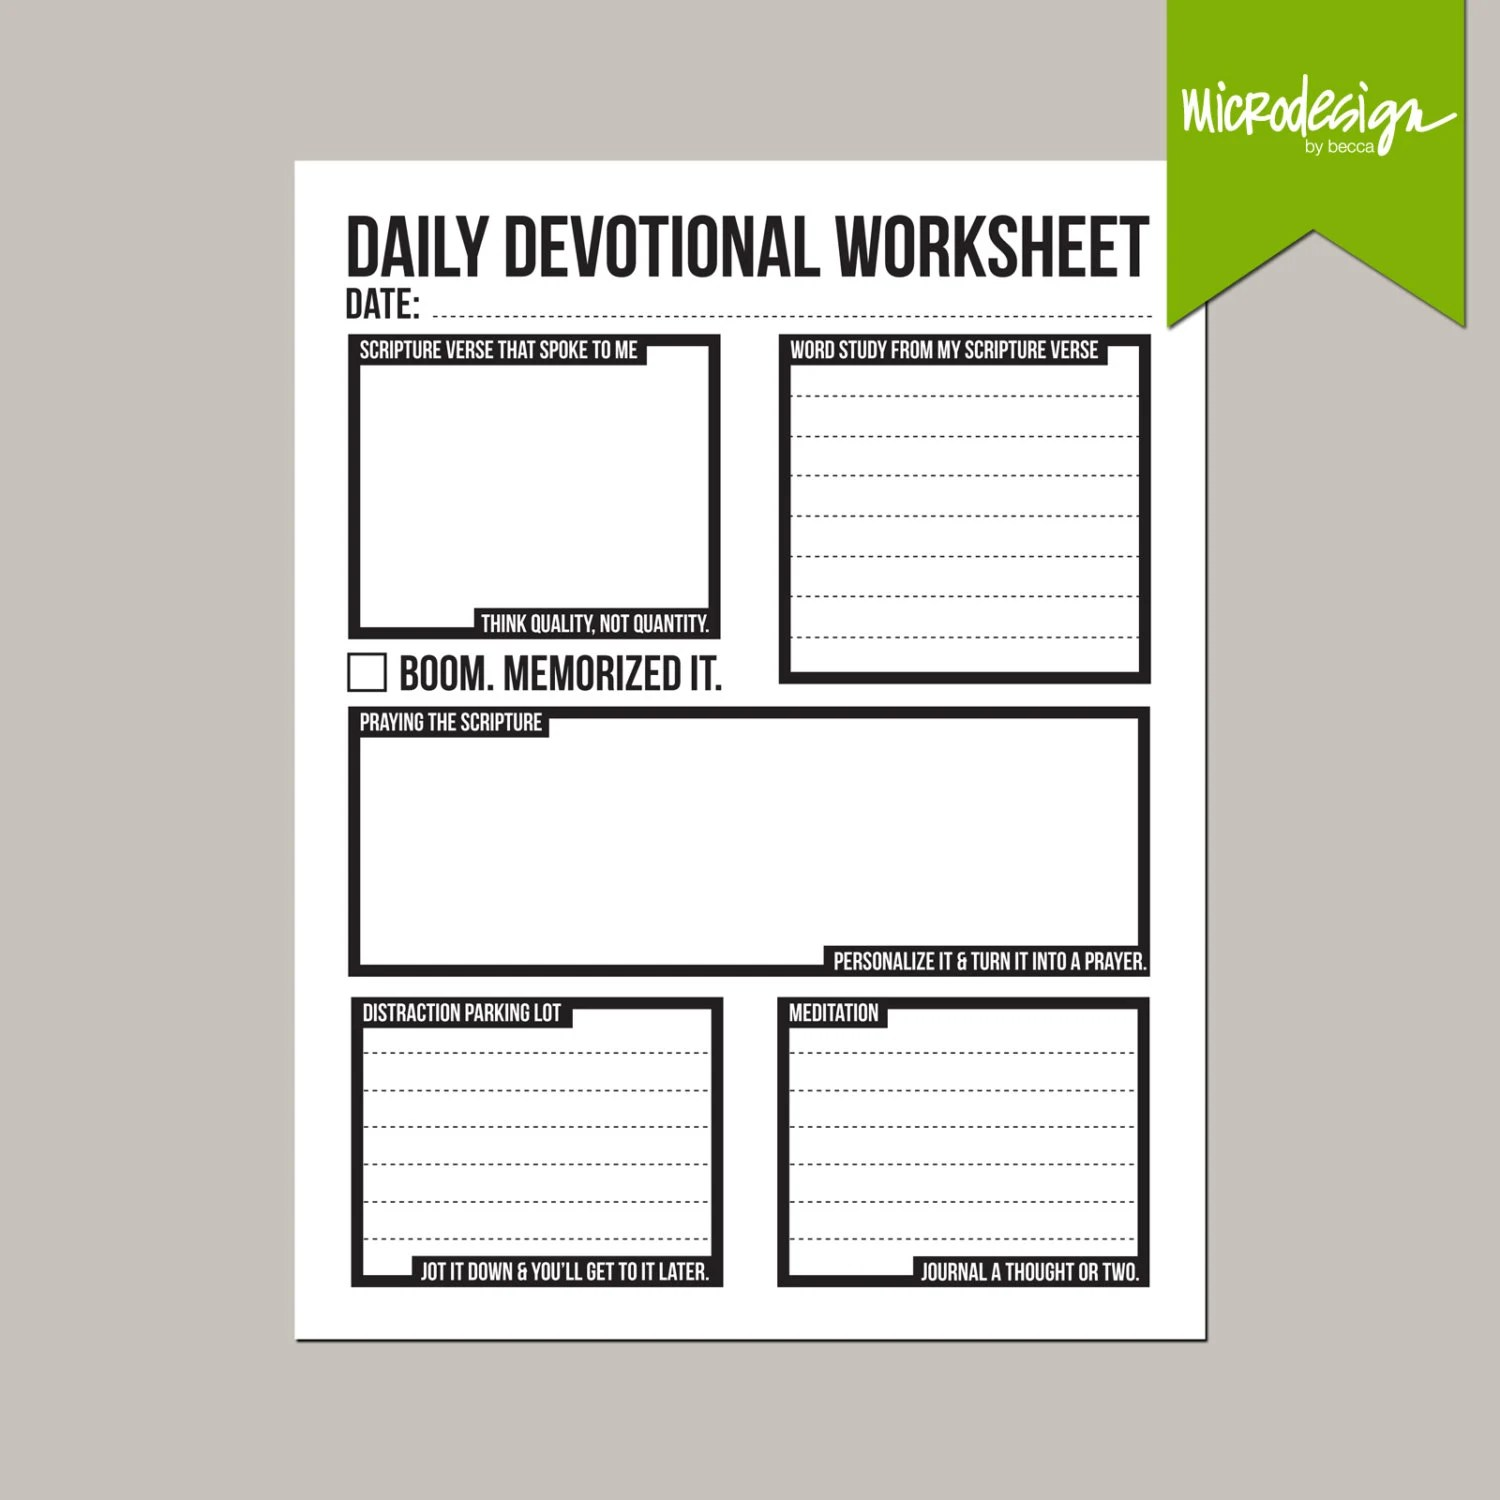 Daily Devotional Prayer And Scripture Study Worksheet